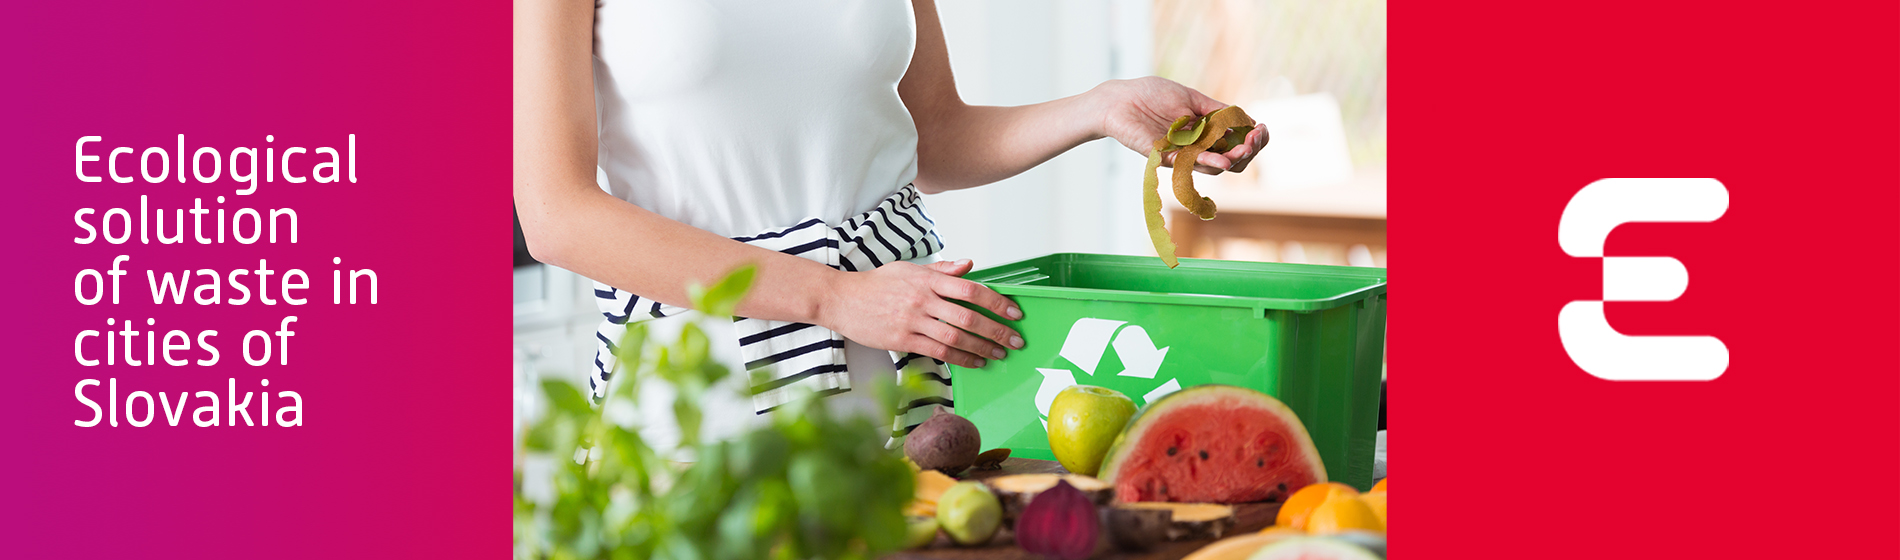 Ecological solution of waste in cities of Slovakia